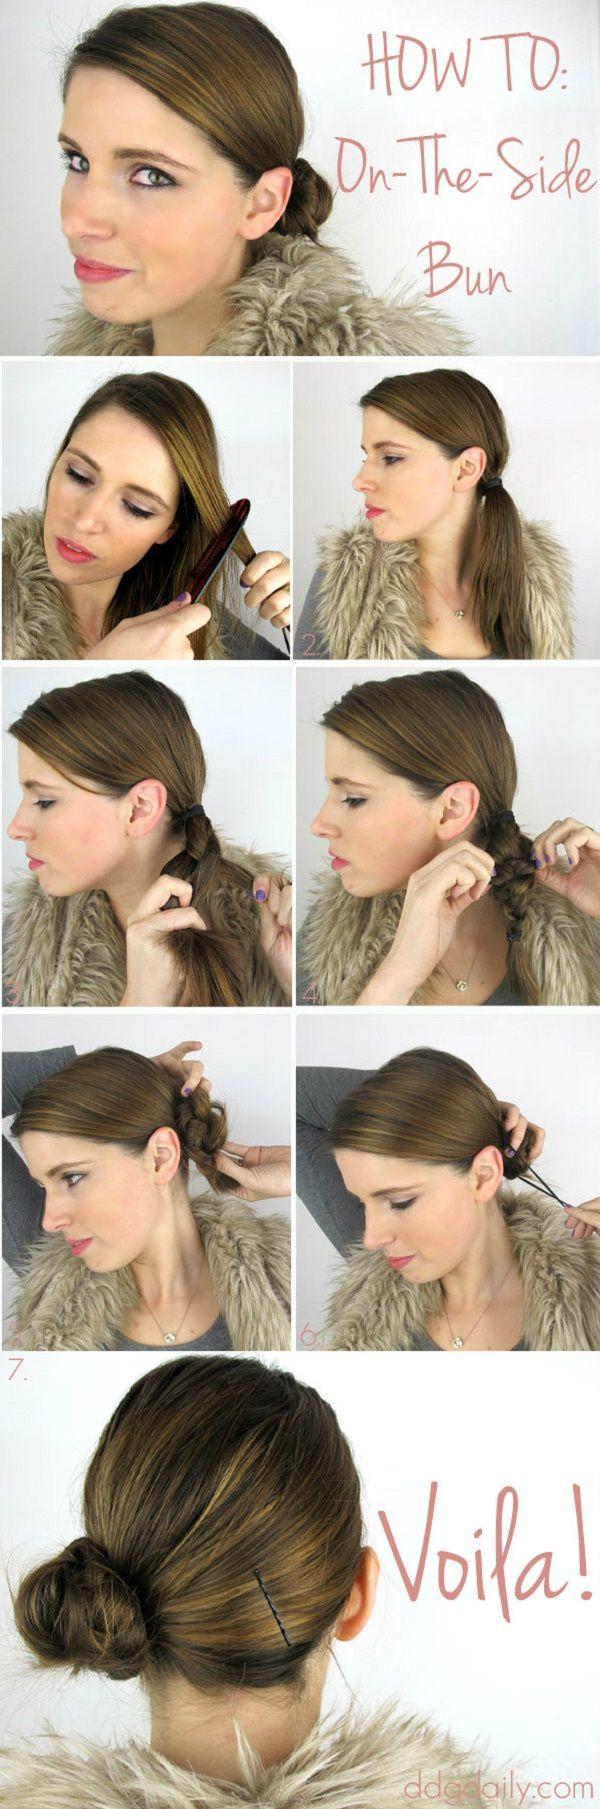 How to create a low side bun in less than minute peinados